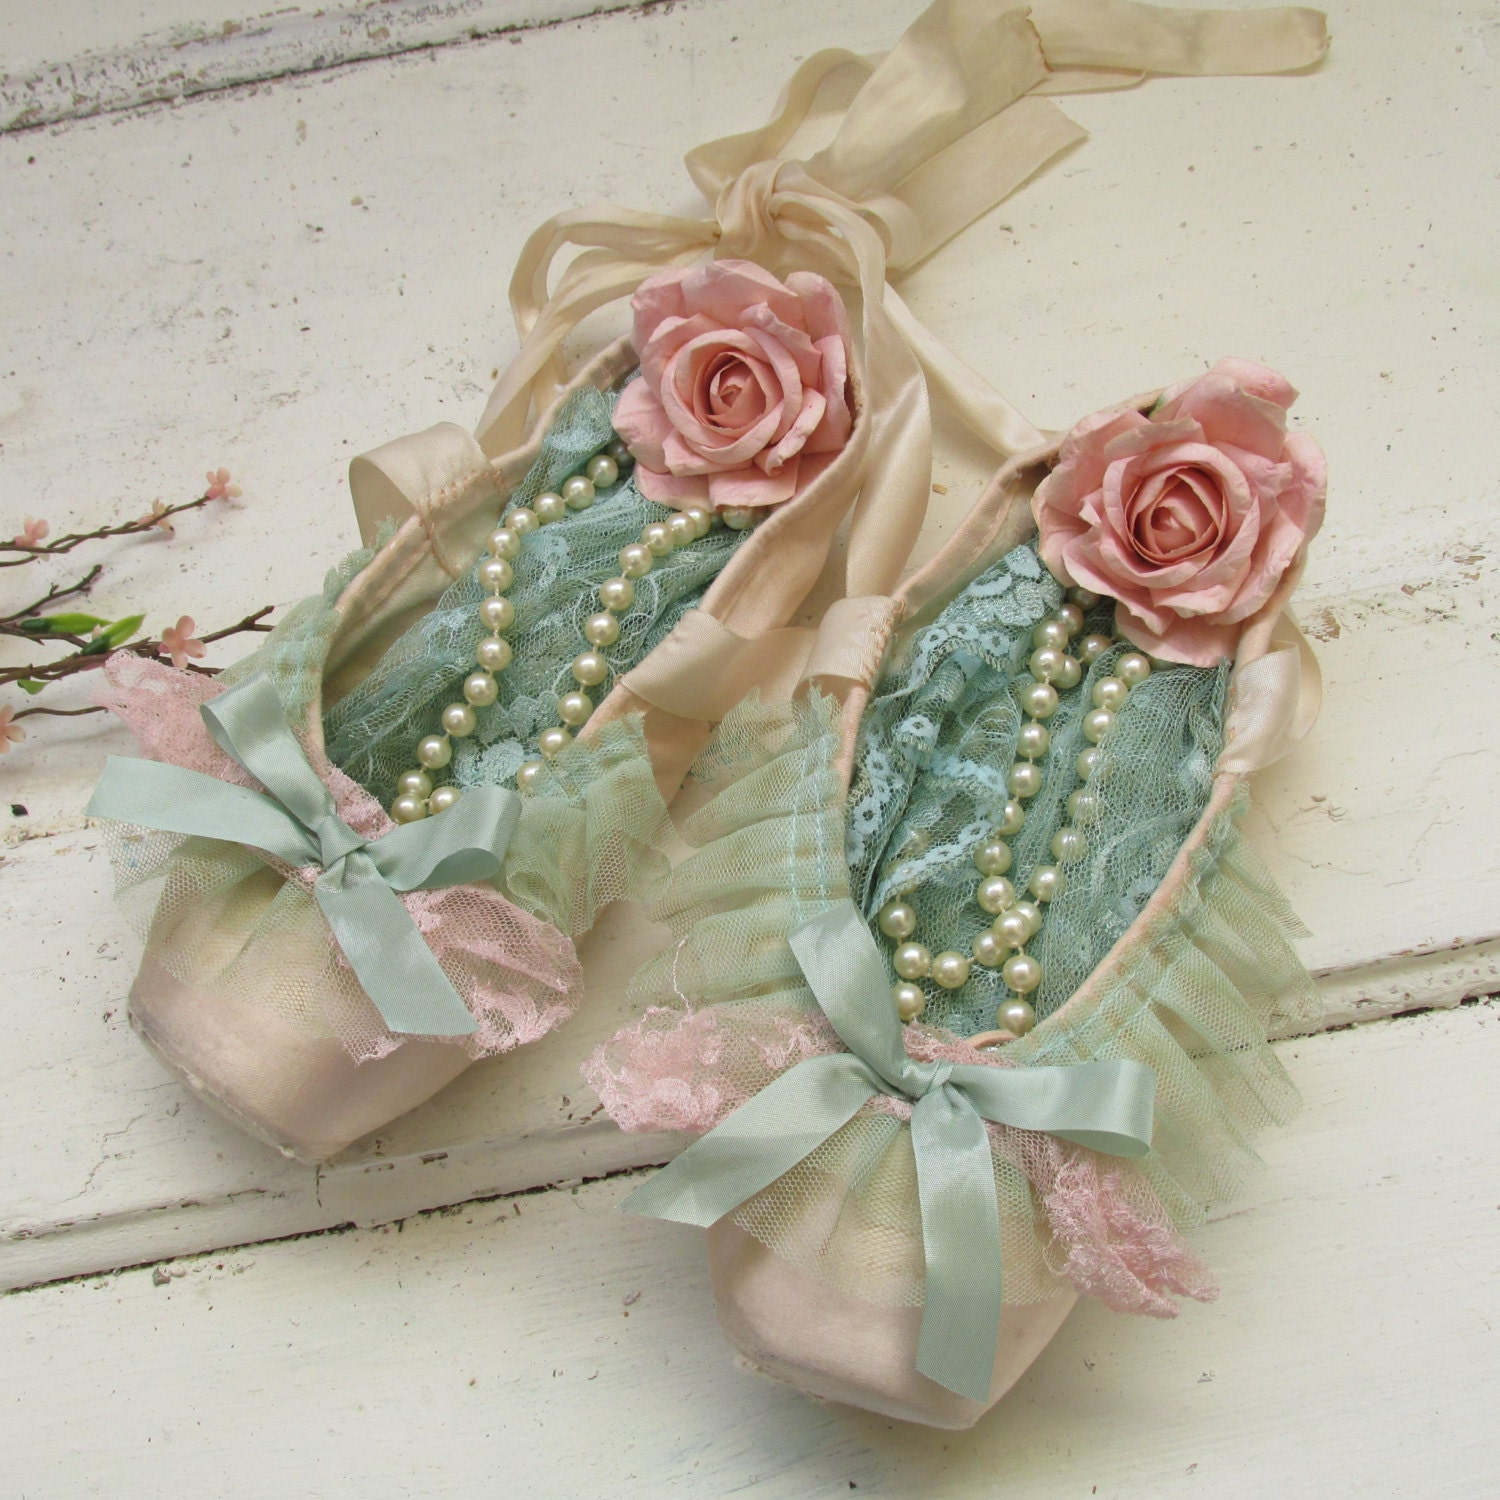 Tiny Farmhouse Decorated Pink Ballet Pointe Shoes Pink And Mint Green Shabby